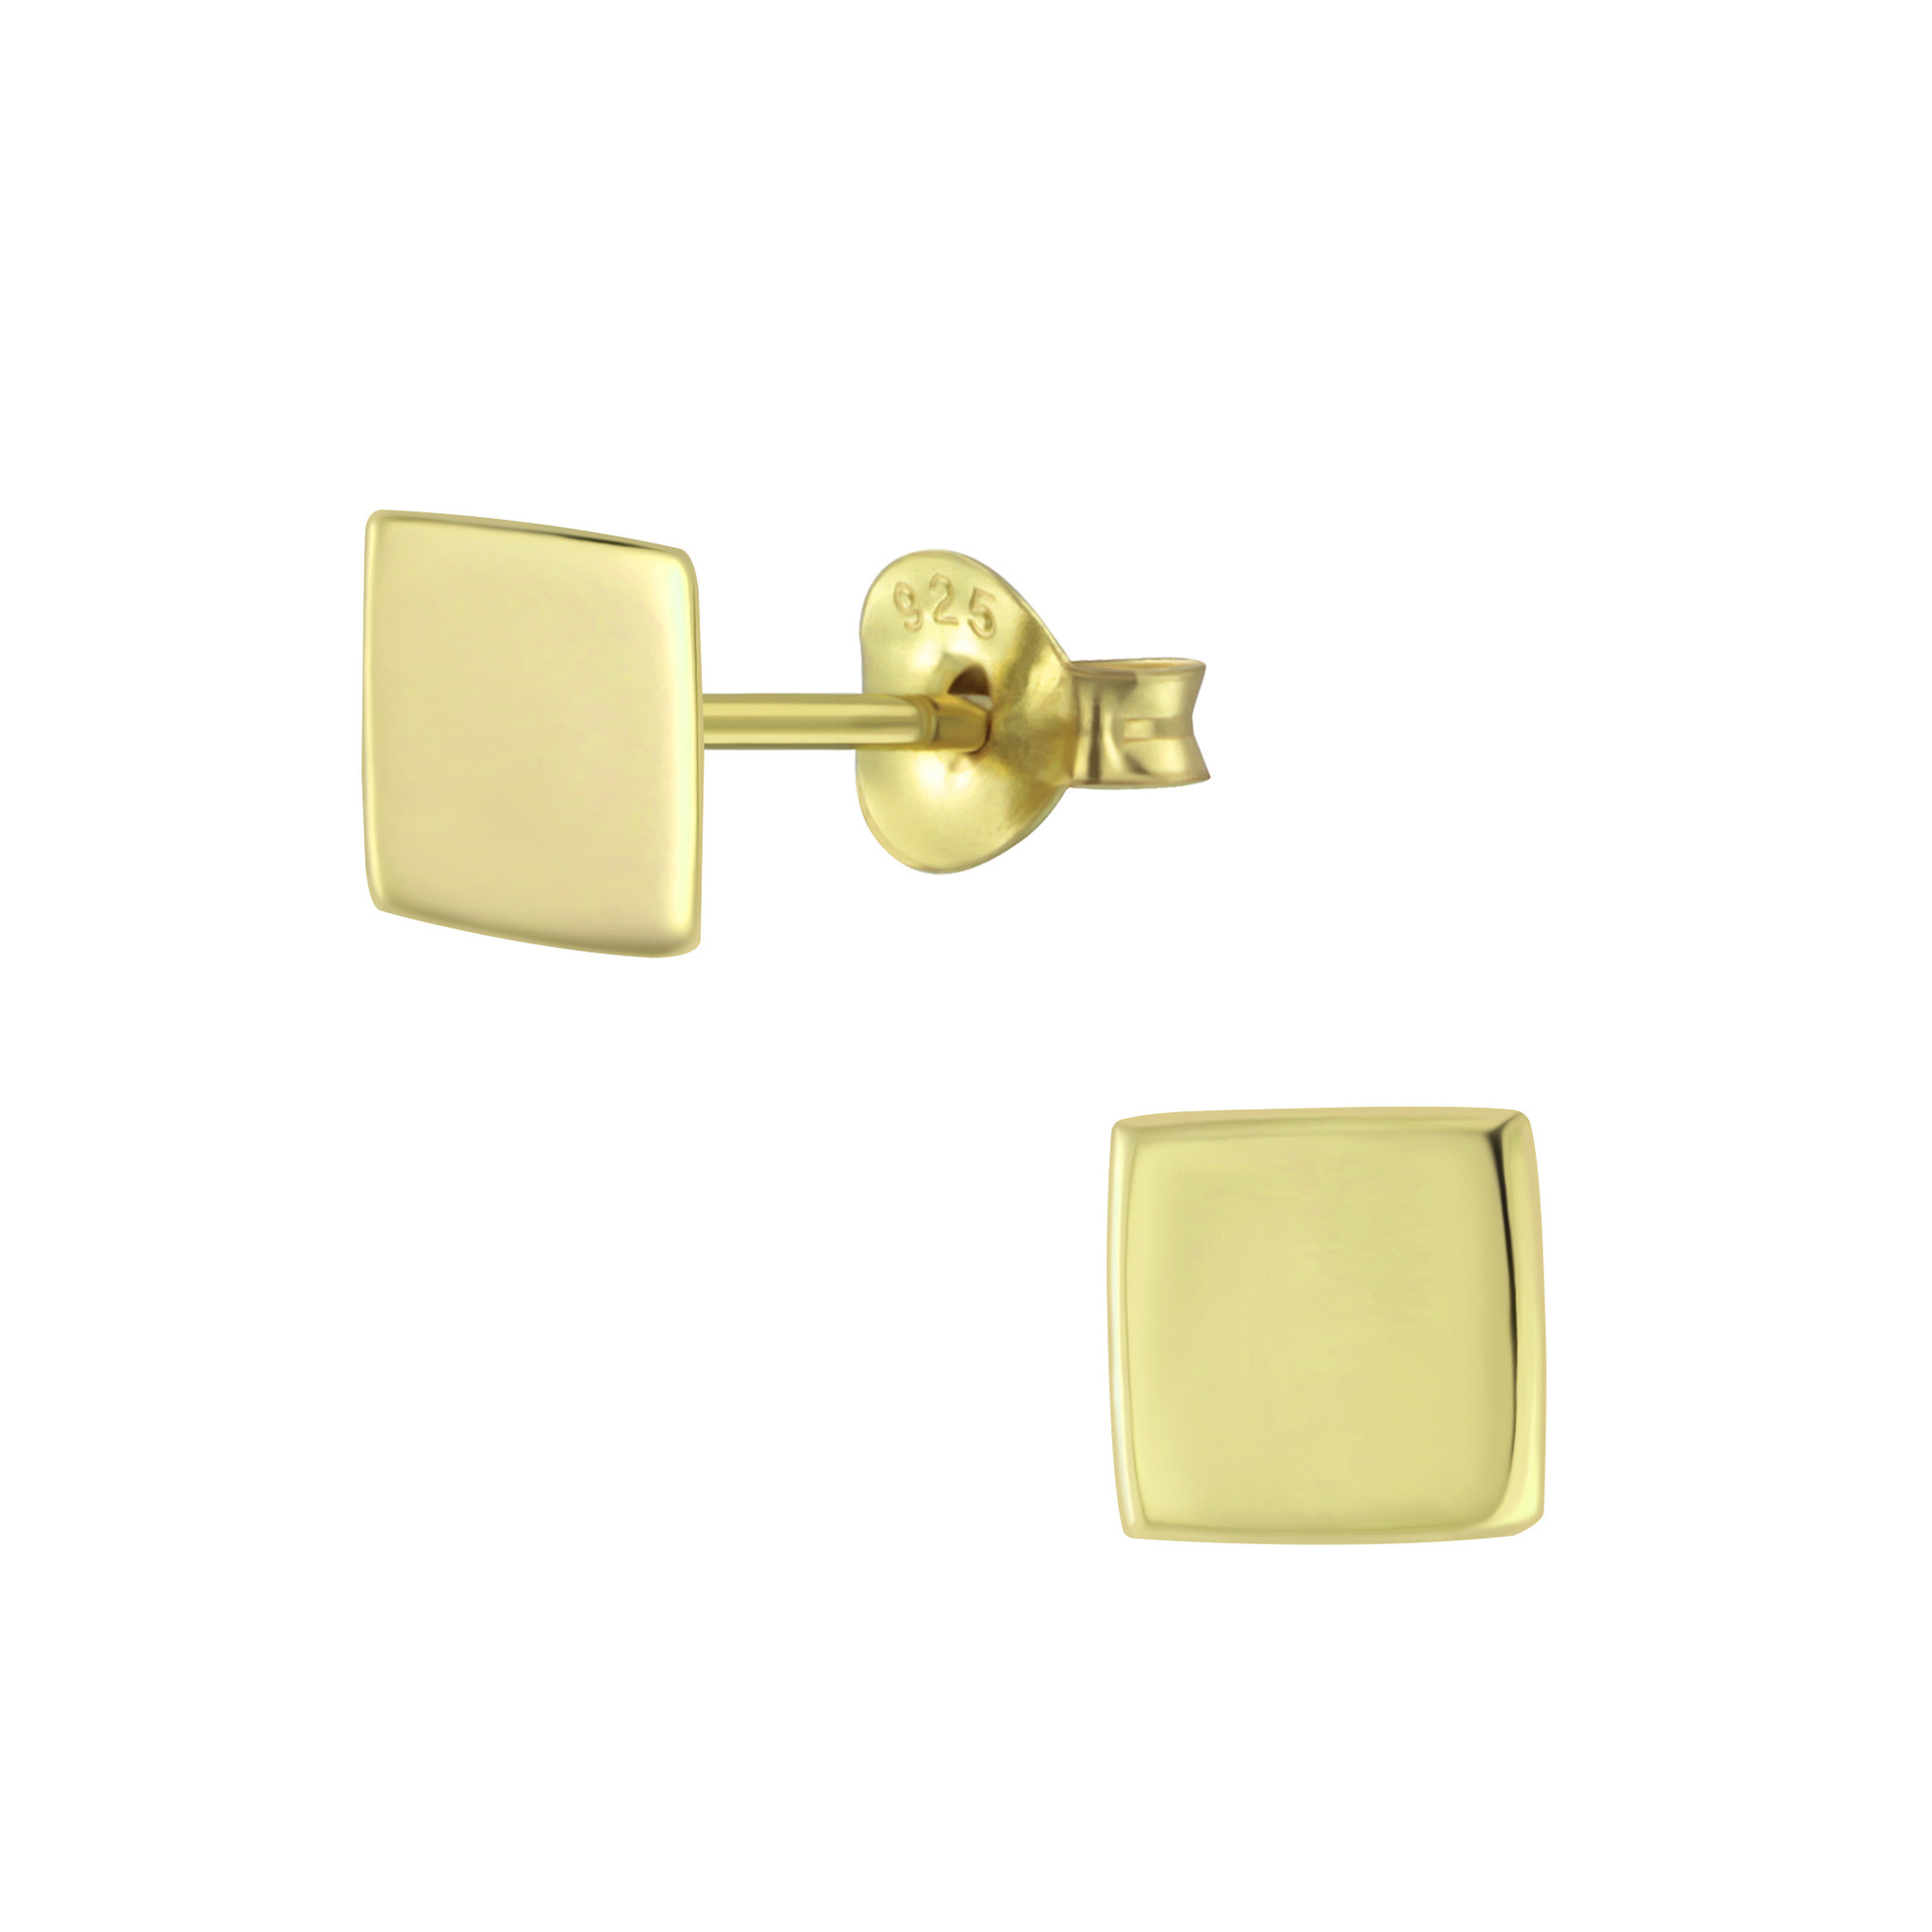 Delicate square stud earrings - 925 sterling silver - gold-1